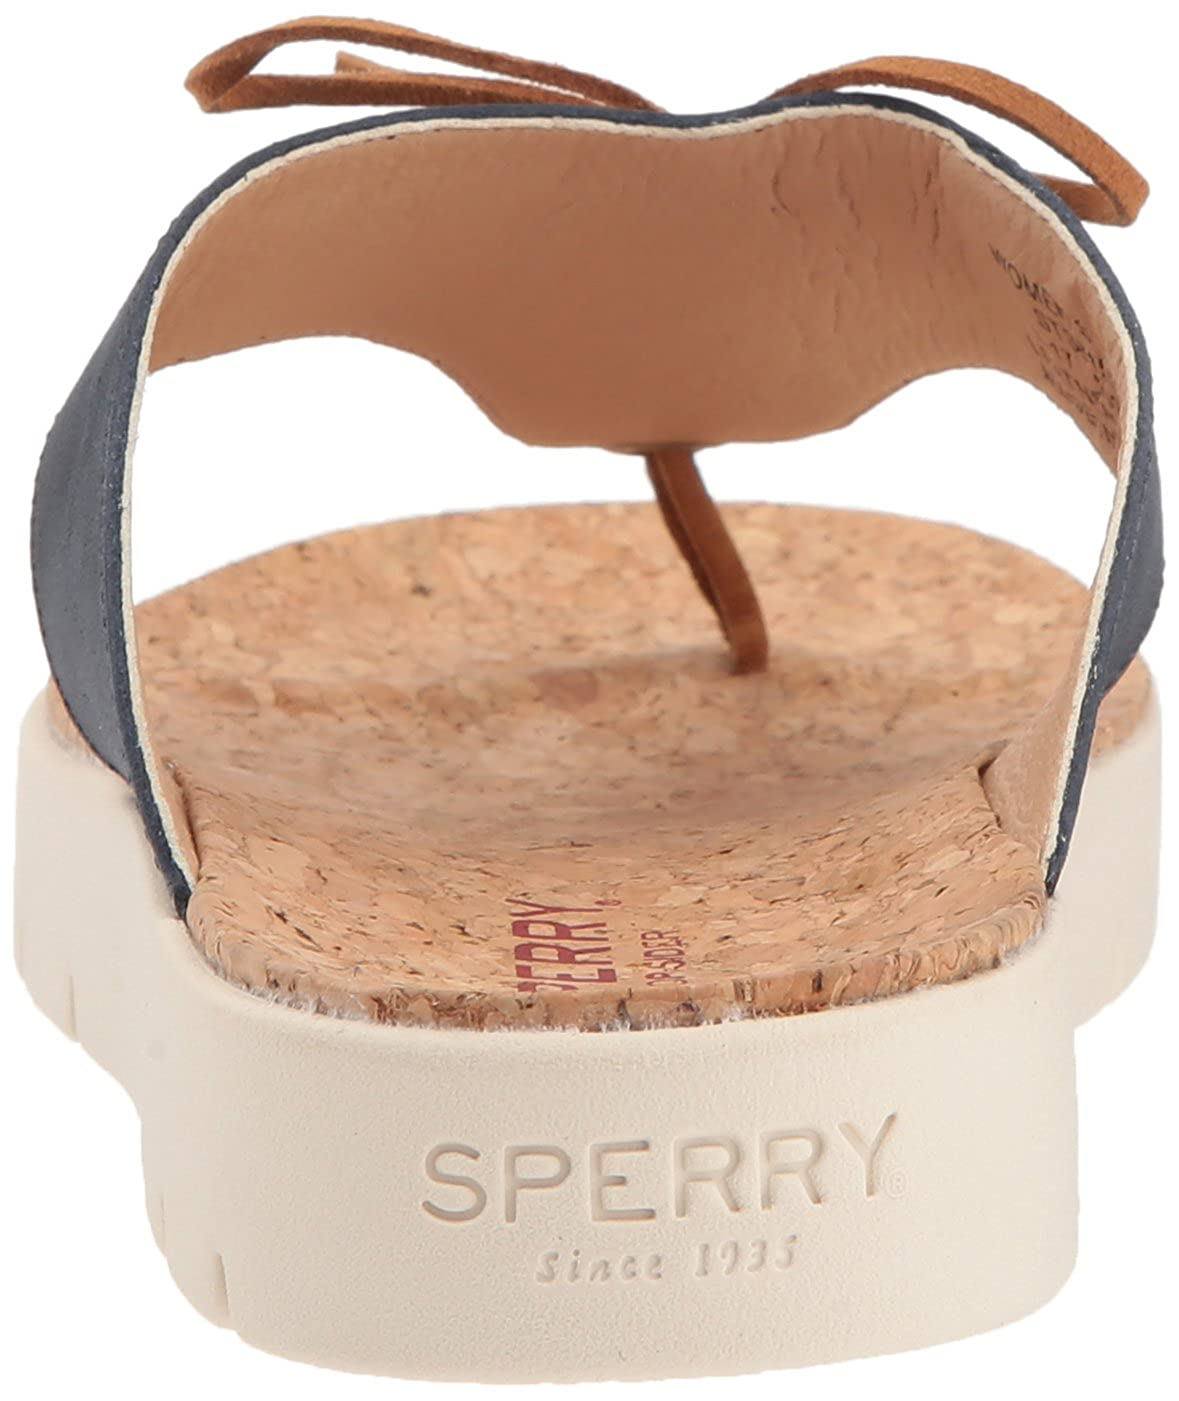 Sperry Navy Damen Sunkiss Cara Lea. Navy Sperry Zehentrenner, Blau (Navy) 6658f1